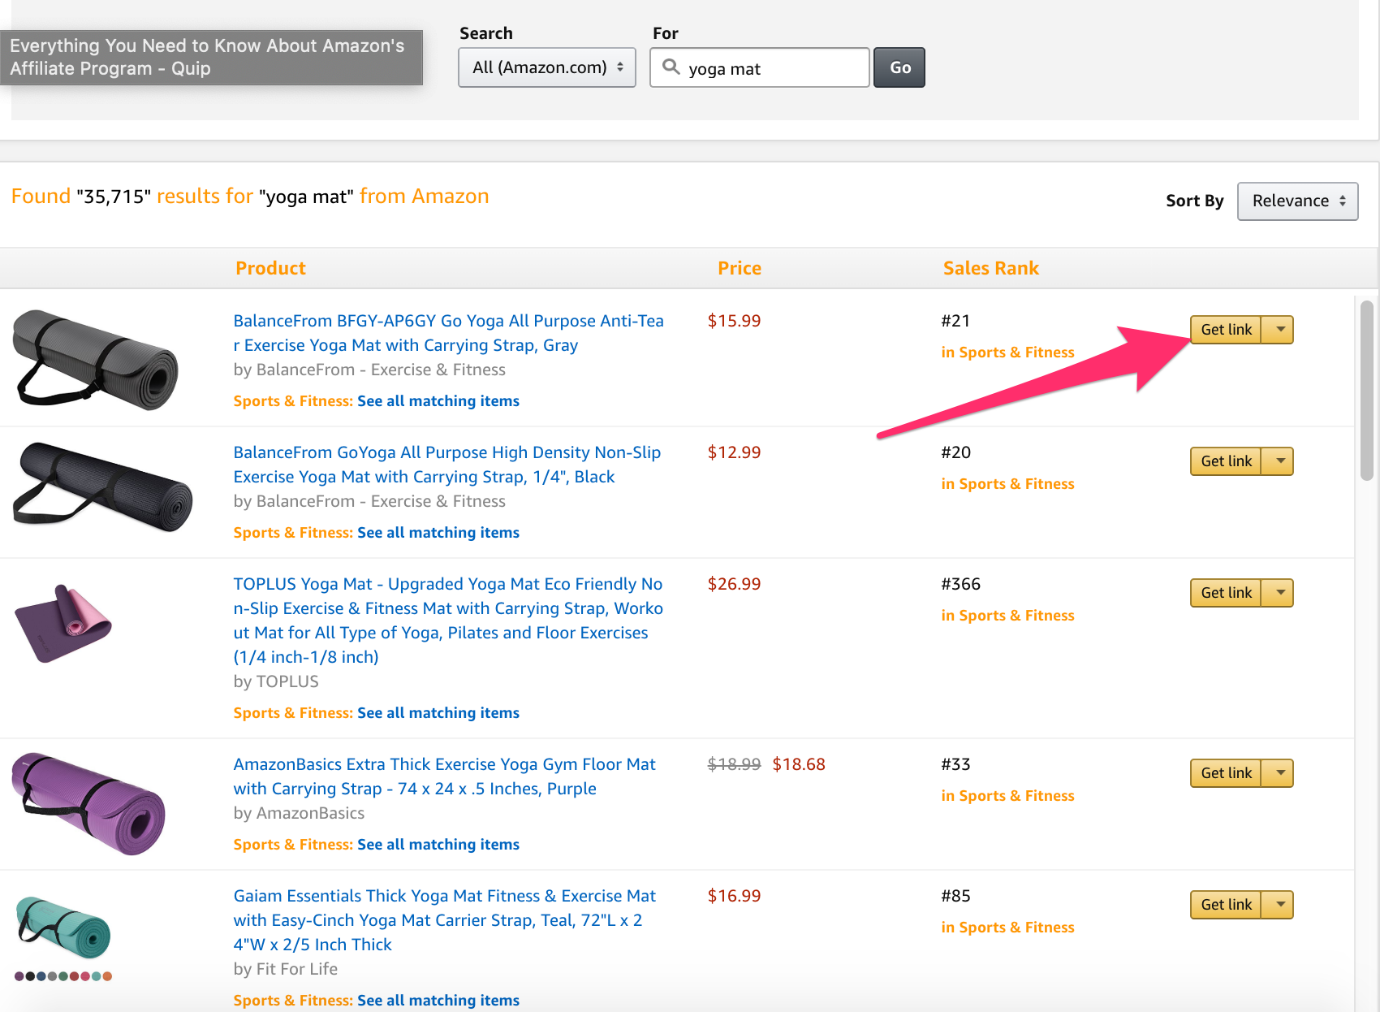 Everything You Need to Know About Amazon's Affiliate Program ...